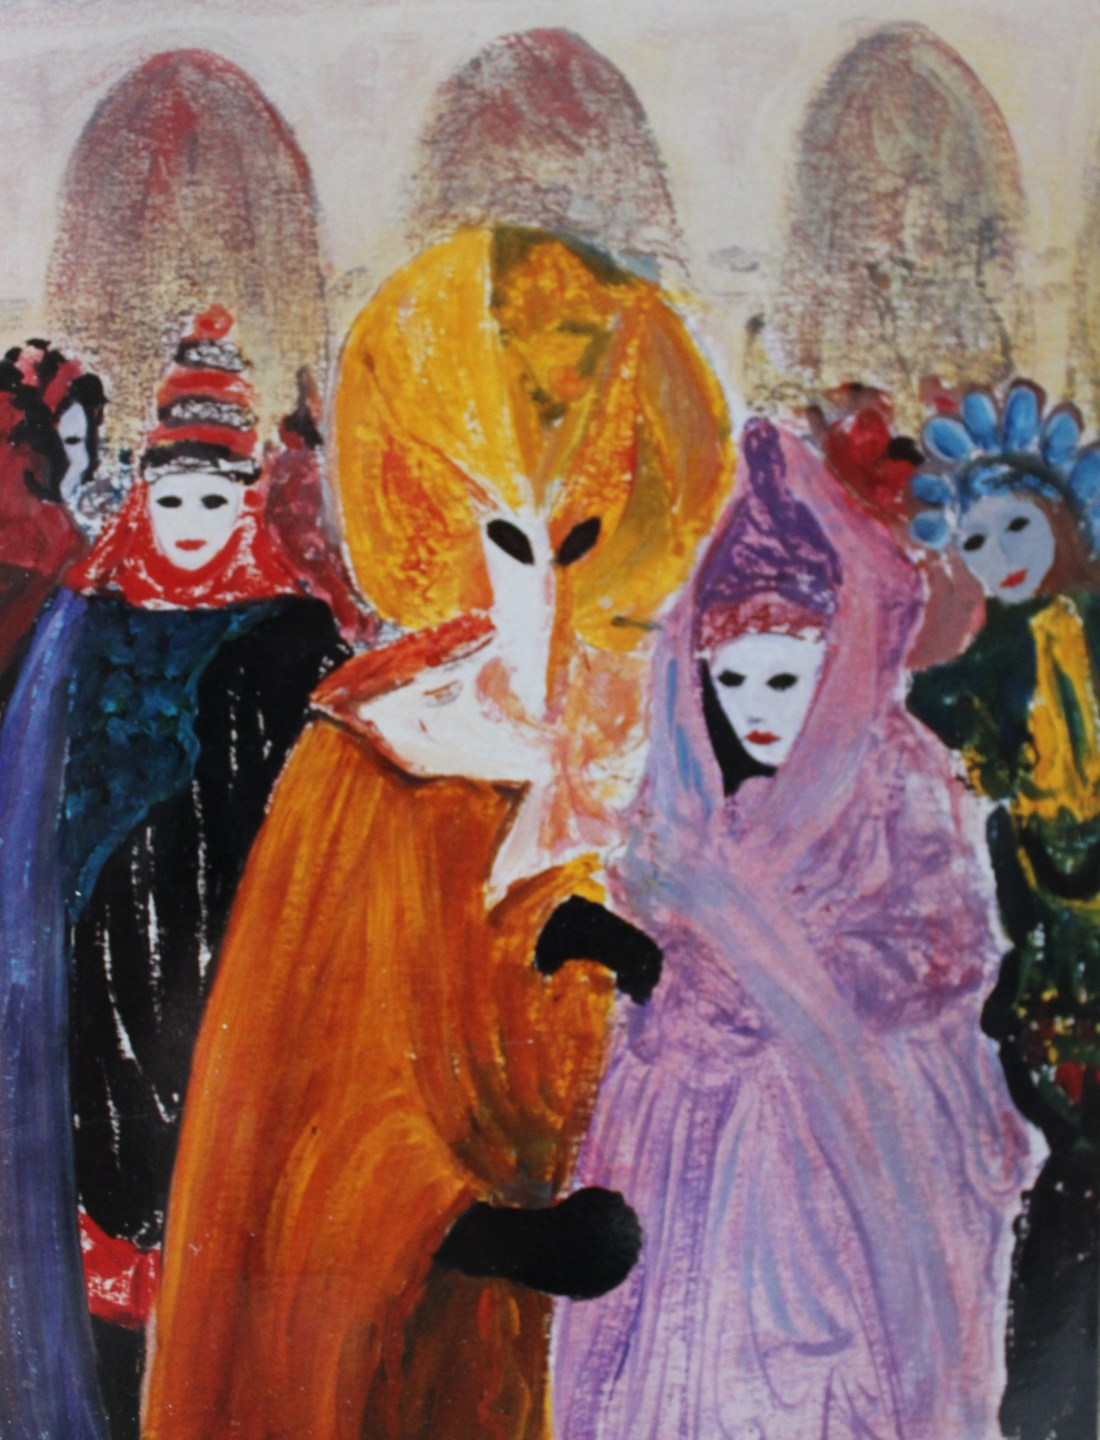 Carnival Venice oil 30x40.JPG available